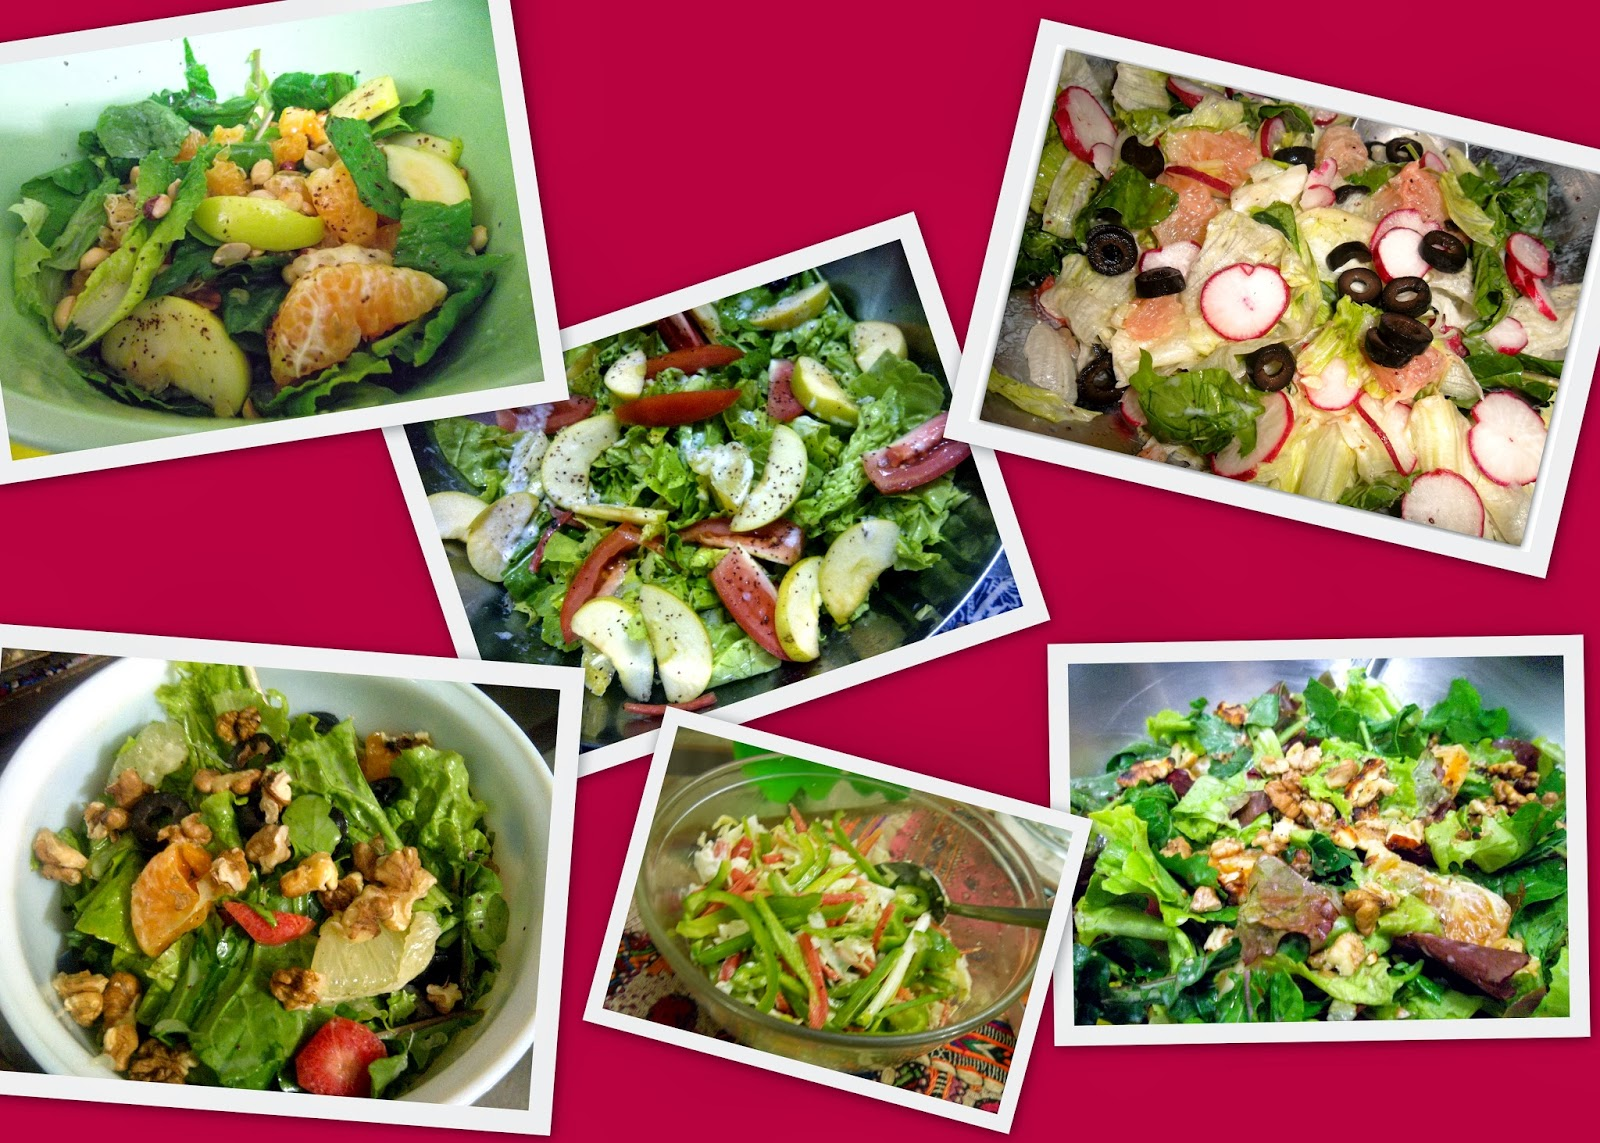 Starting off with Salad 101 - Cleaning & Storing Greens